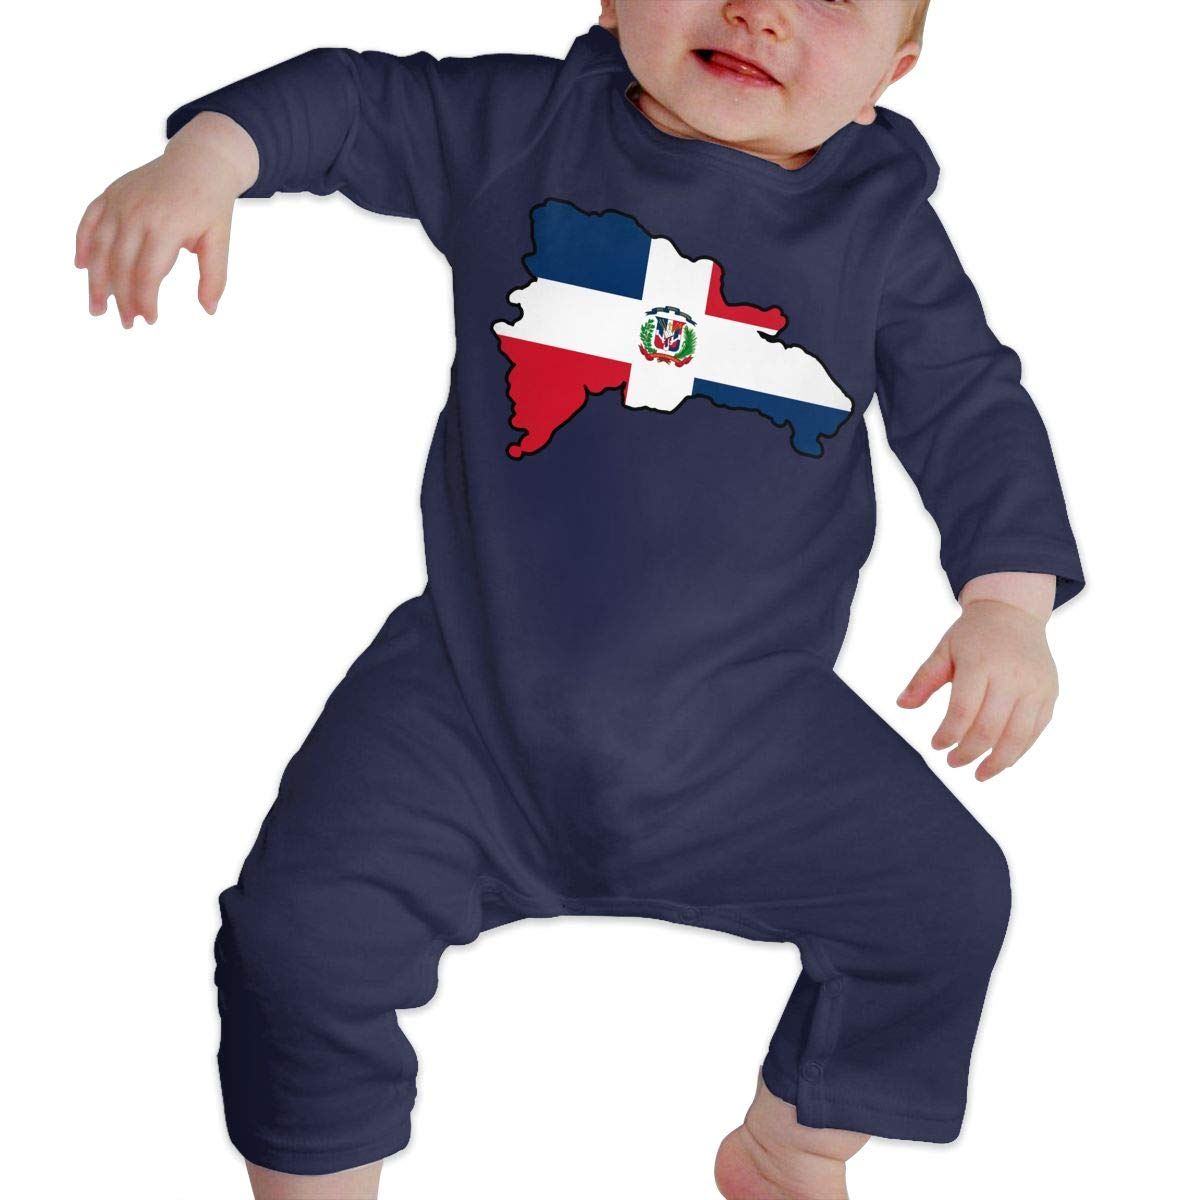 LBJQ8 Dominican Republic Newborn Baby Girl Infant Soft /& Breathable Jumpsuits Playsuit Outfits